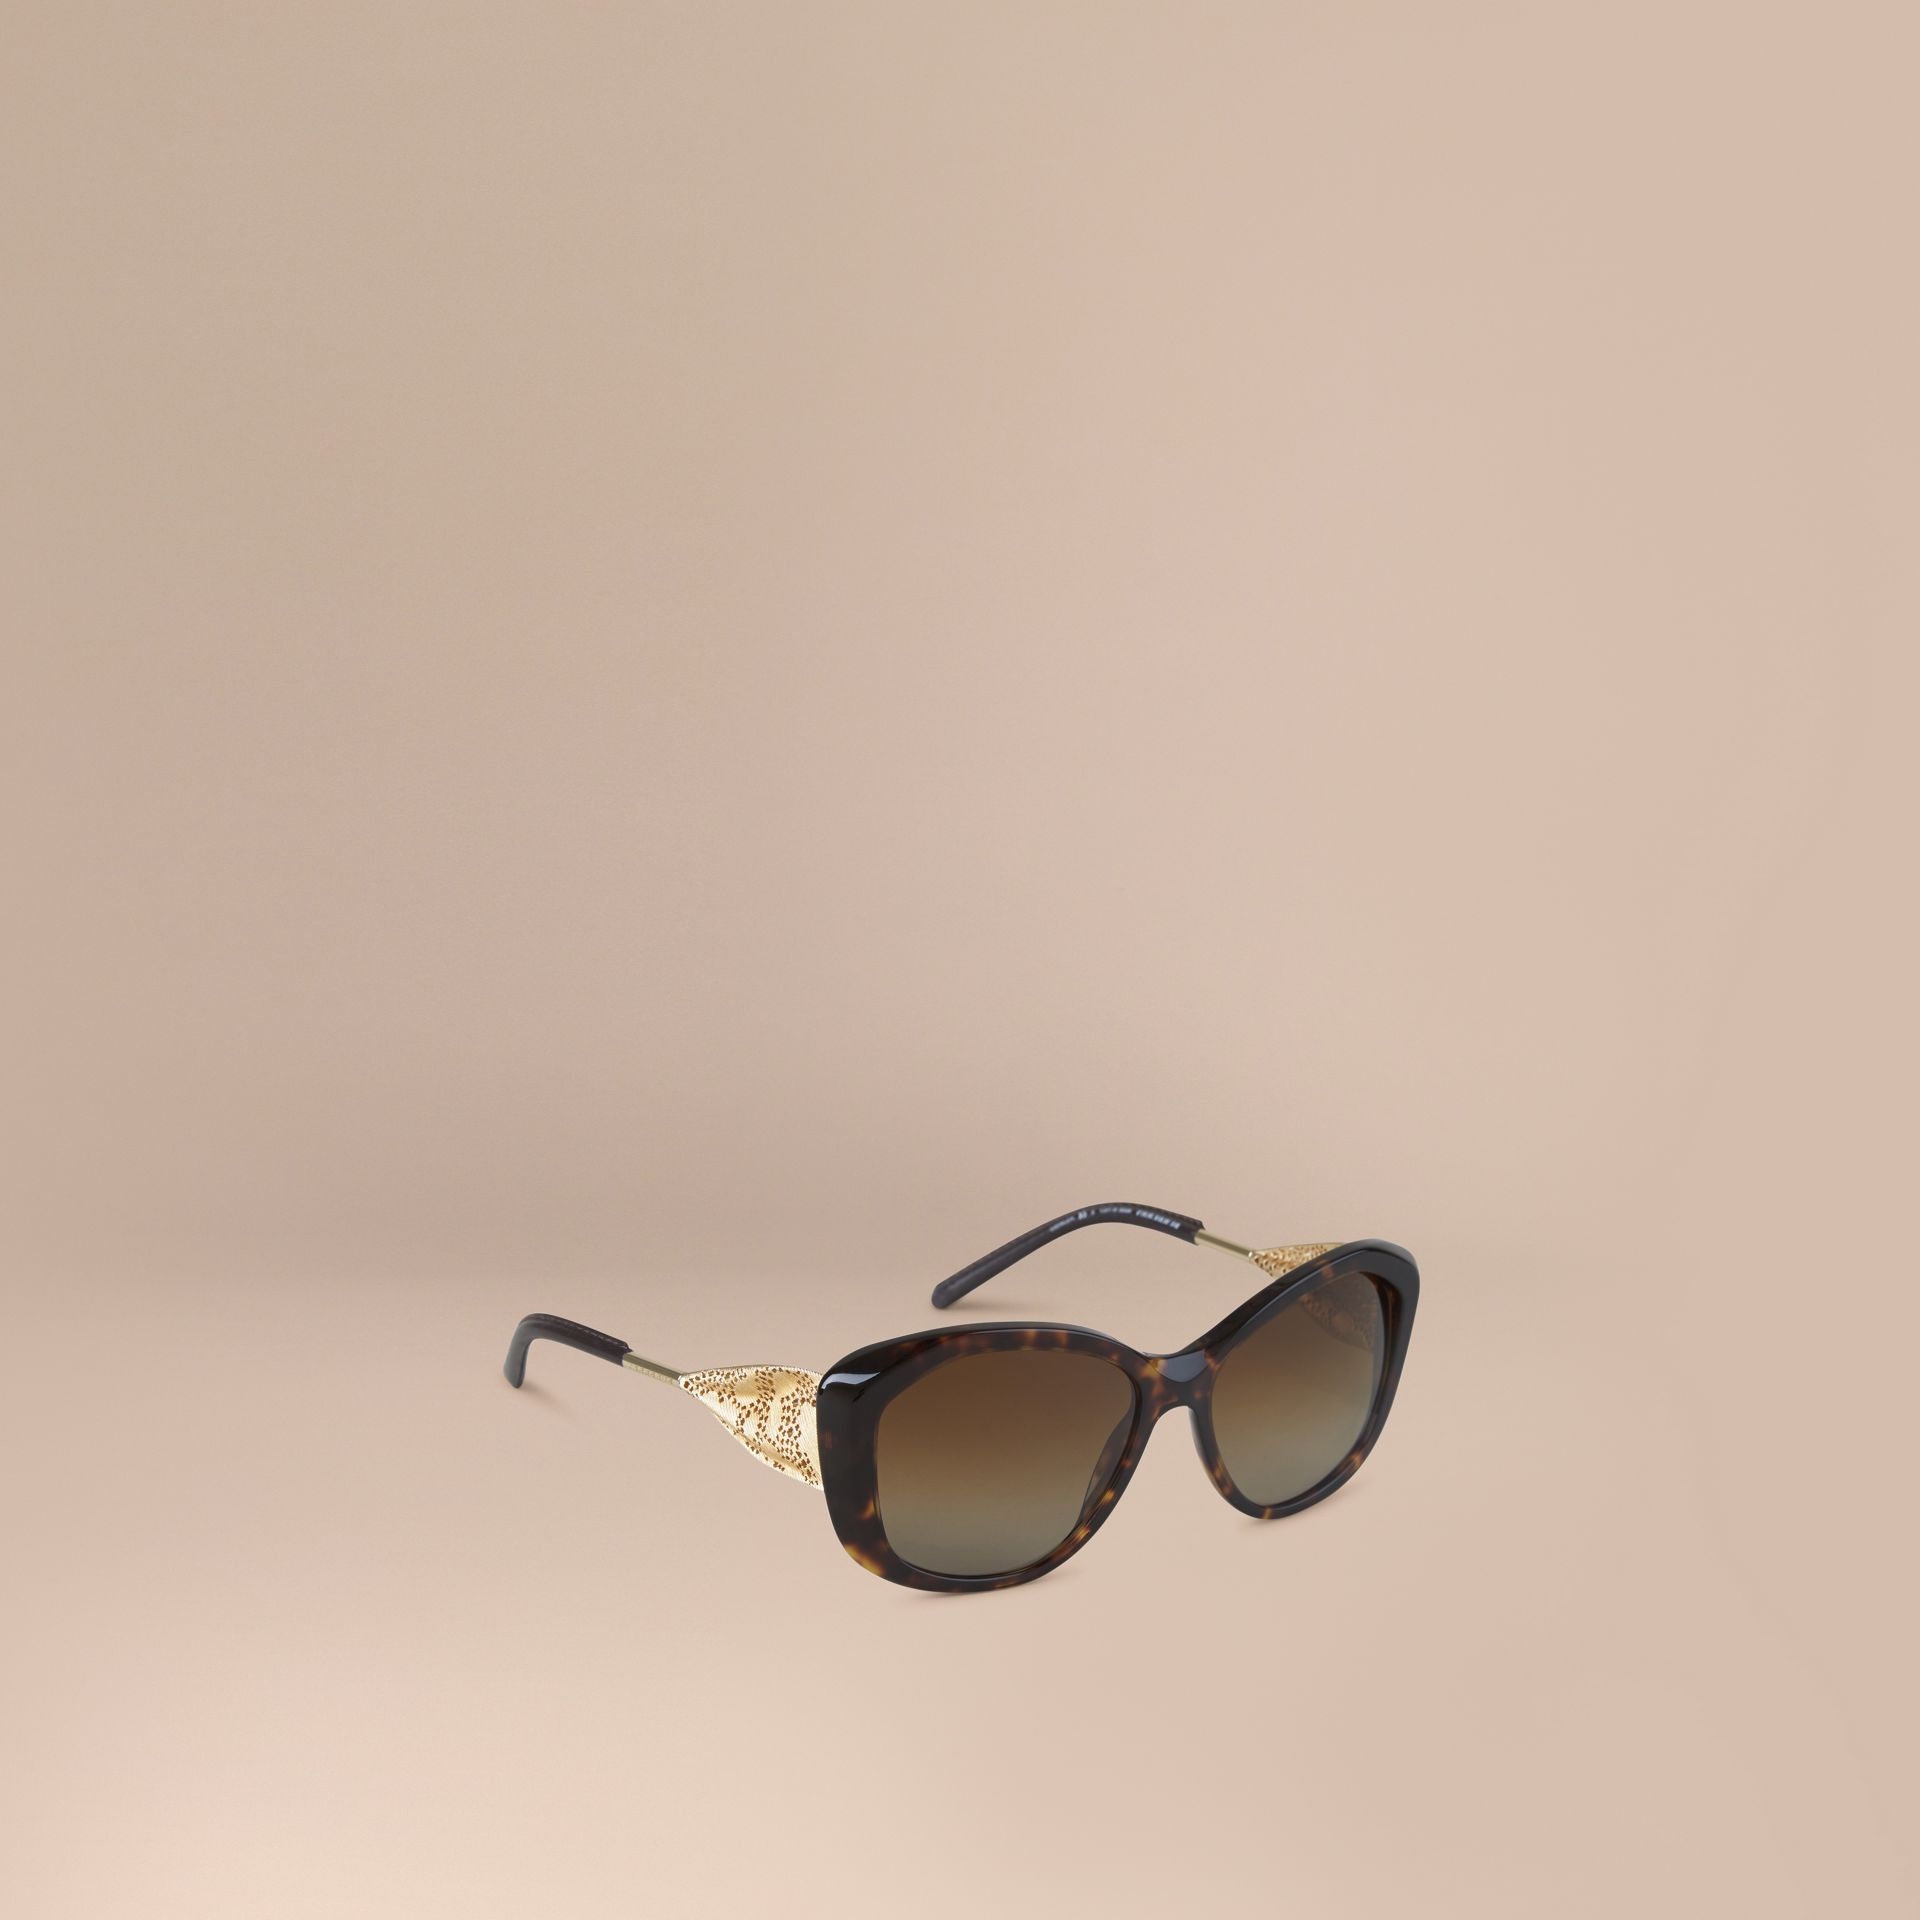 Gabardine Lace Collection Square Frame Sunglasses in Tortoise Shell - gallery image 1